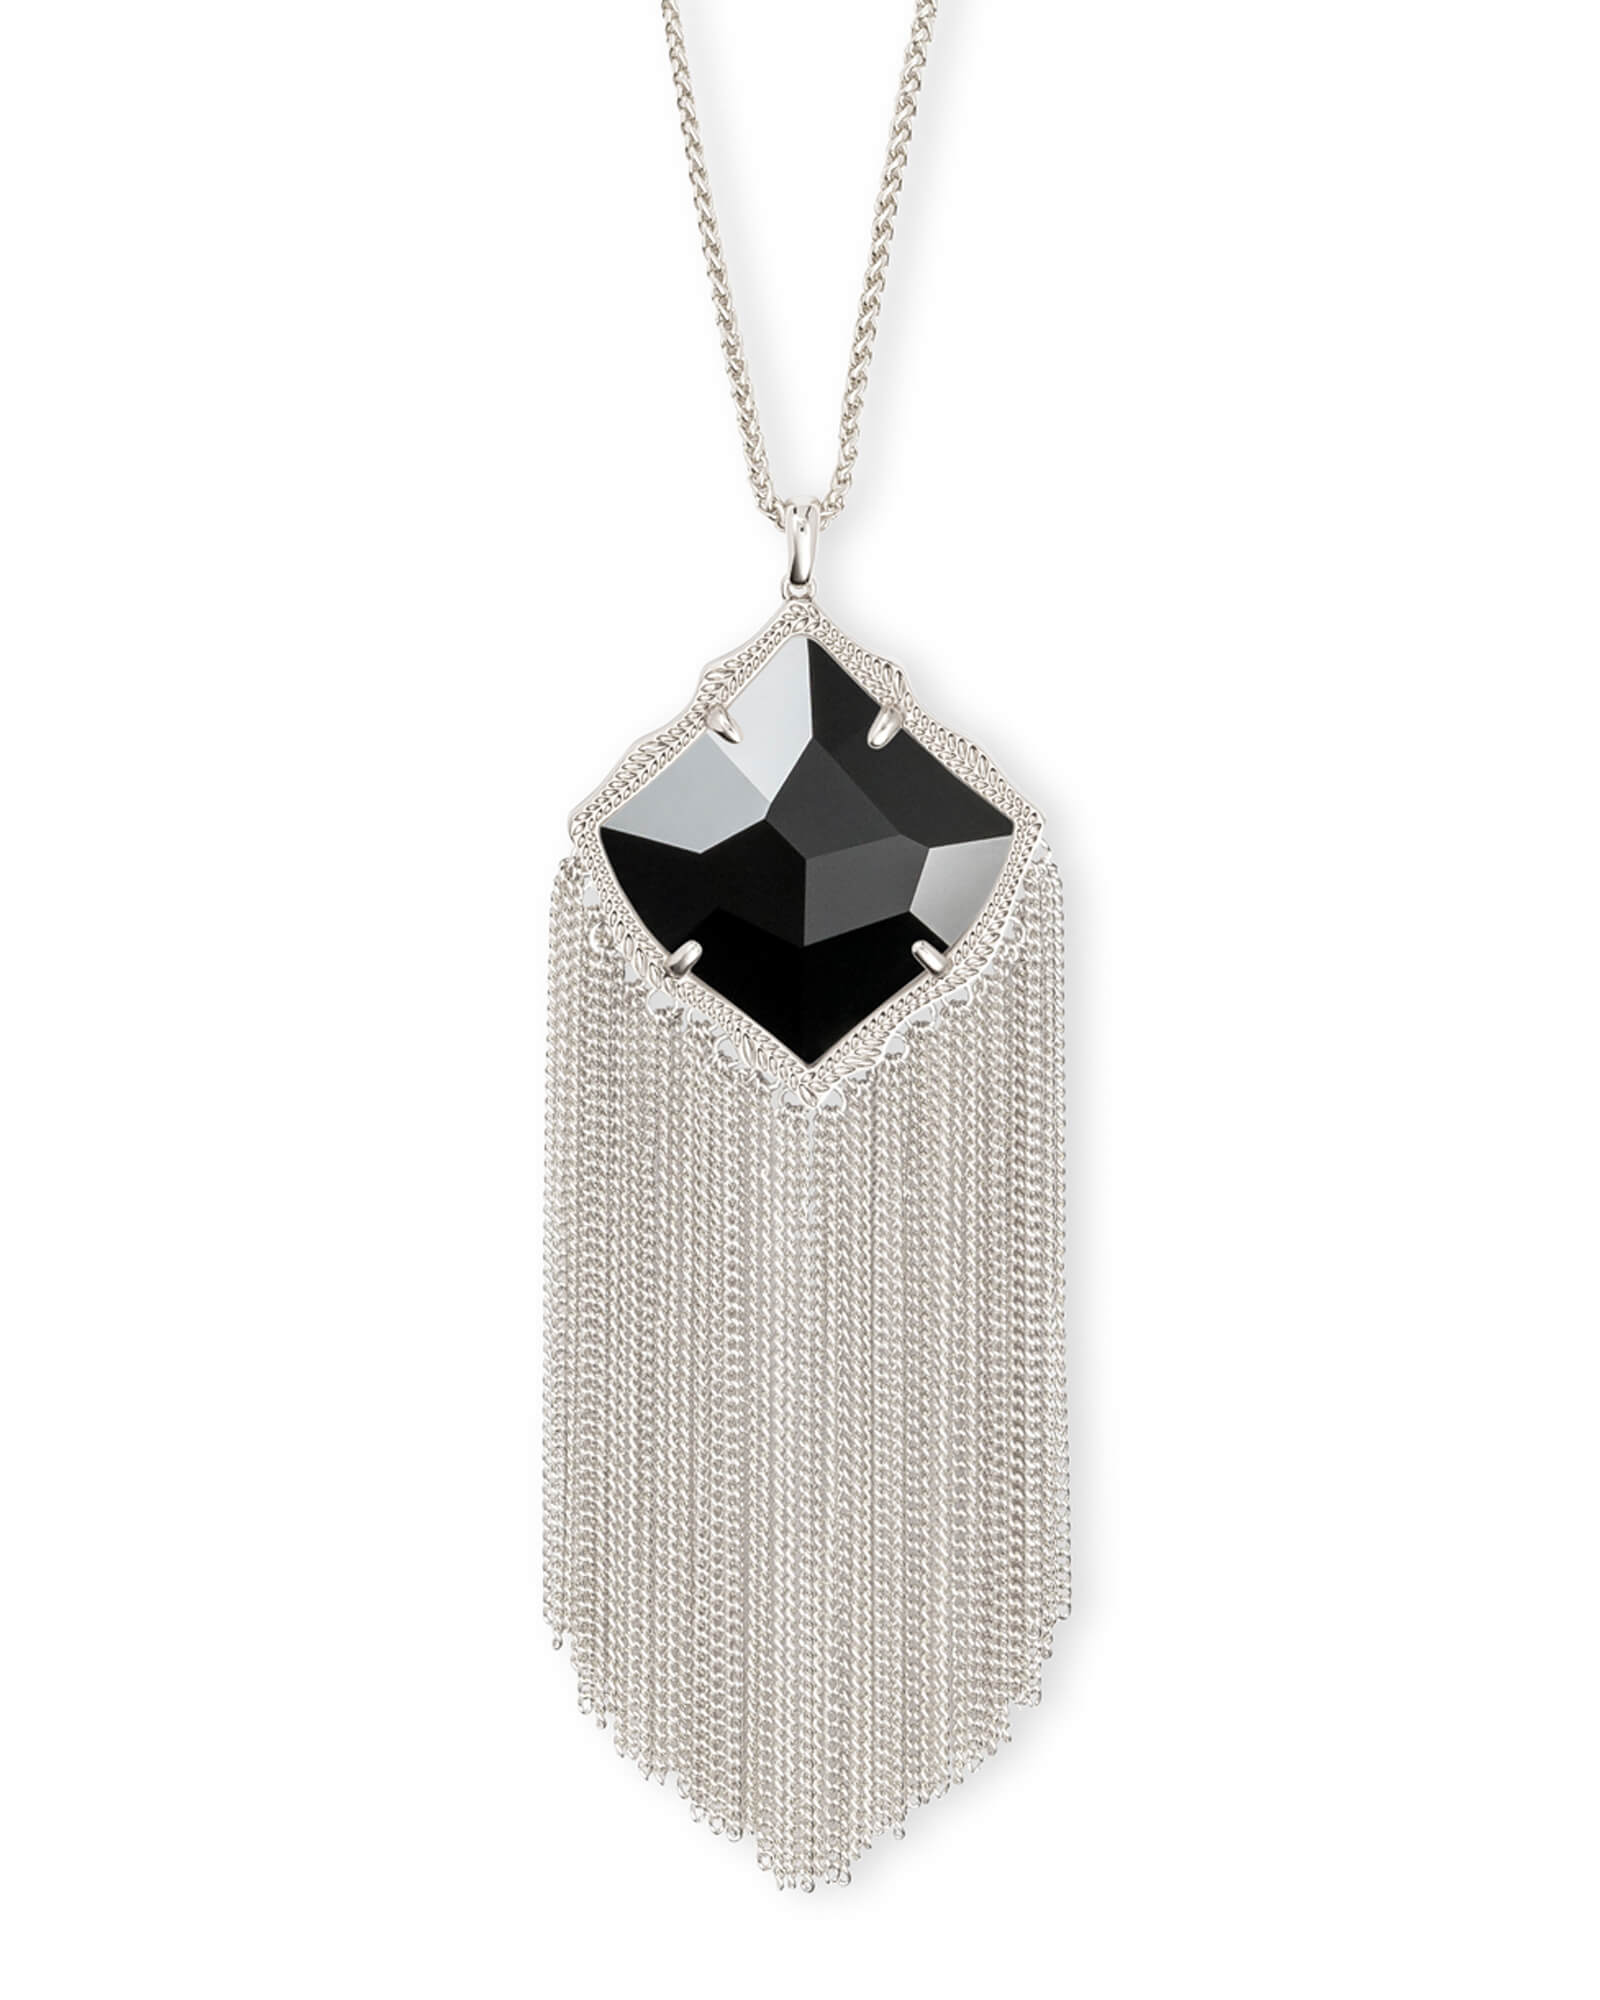 Kingston Long Pendant Necklace in Silver